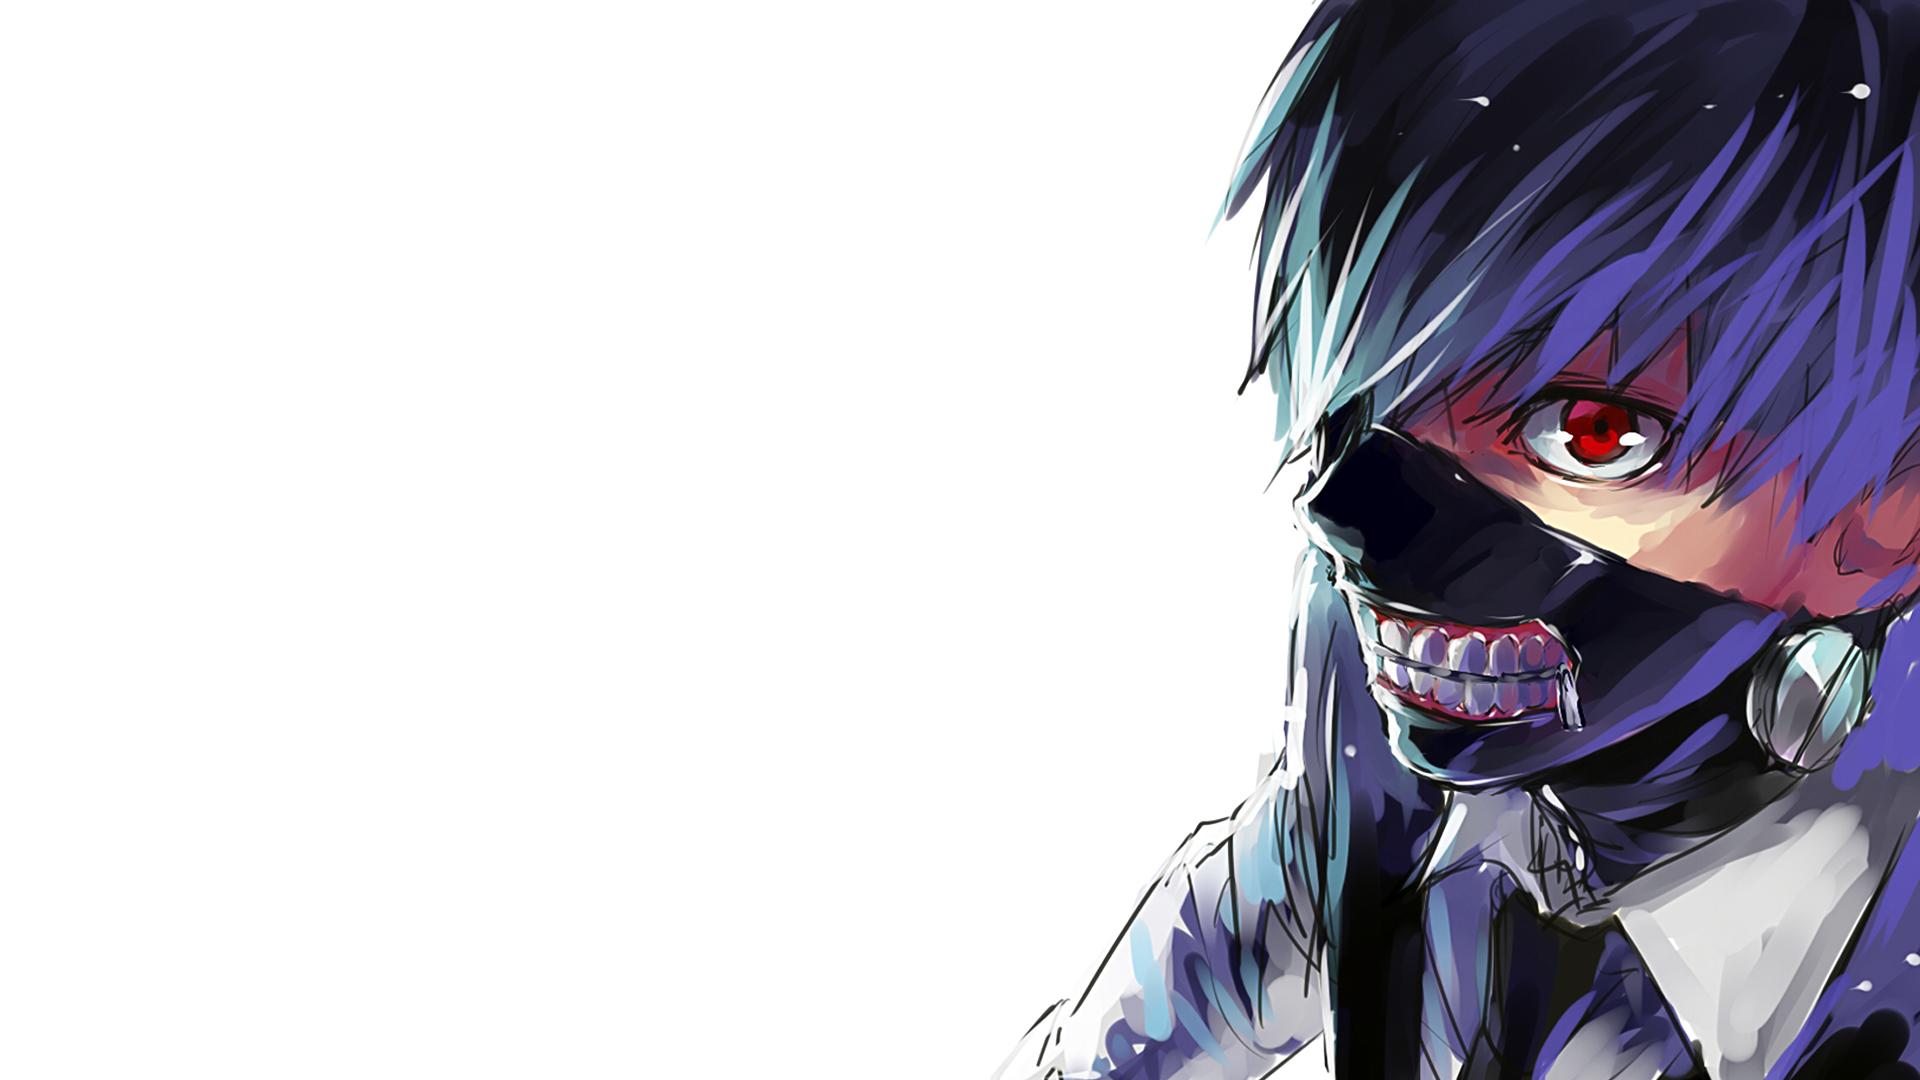 mask tokyo ghoul anime wallpaper hd